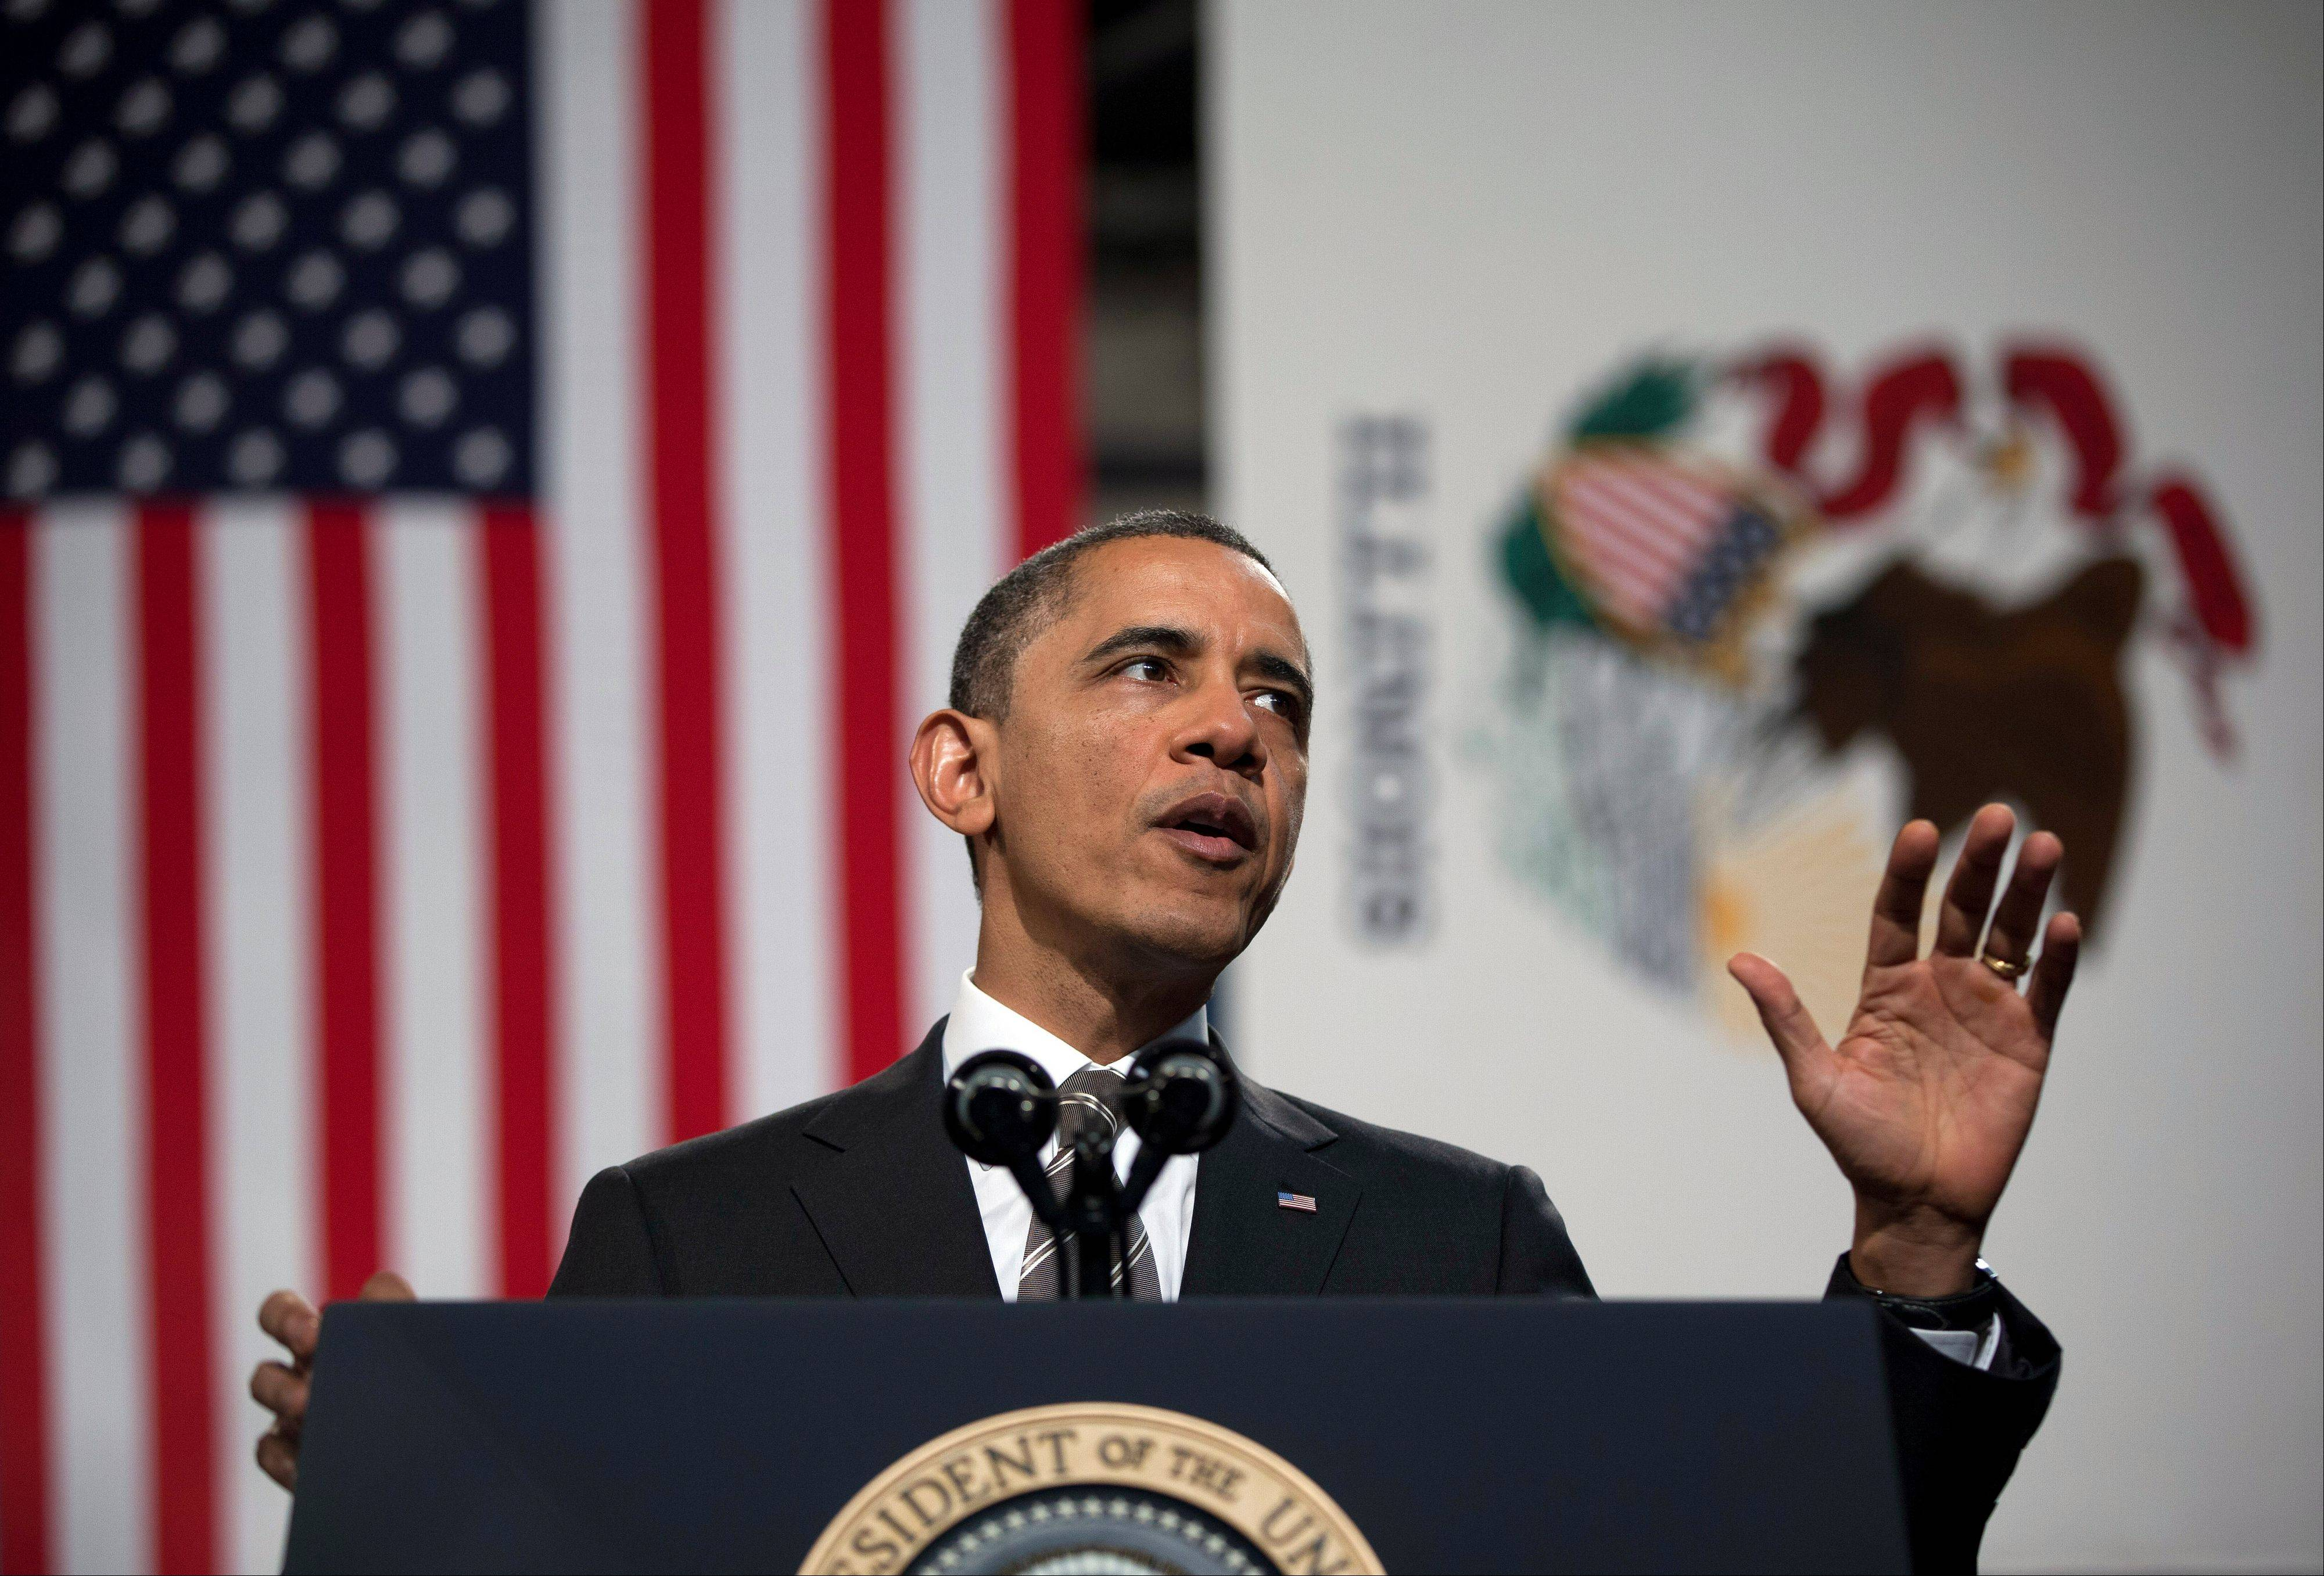 President Barack Obama speaks at Hyde Park Academy on Friday in Chicago. Obama is traveling to promote the economic and educational plan he laid out in his State of the Union address.